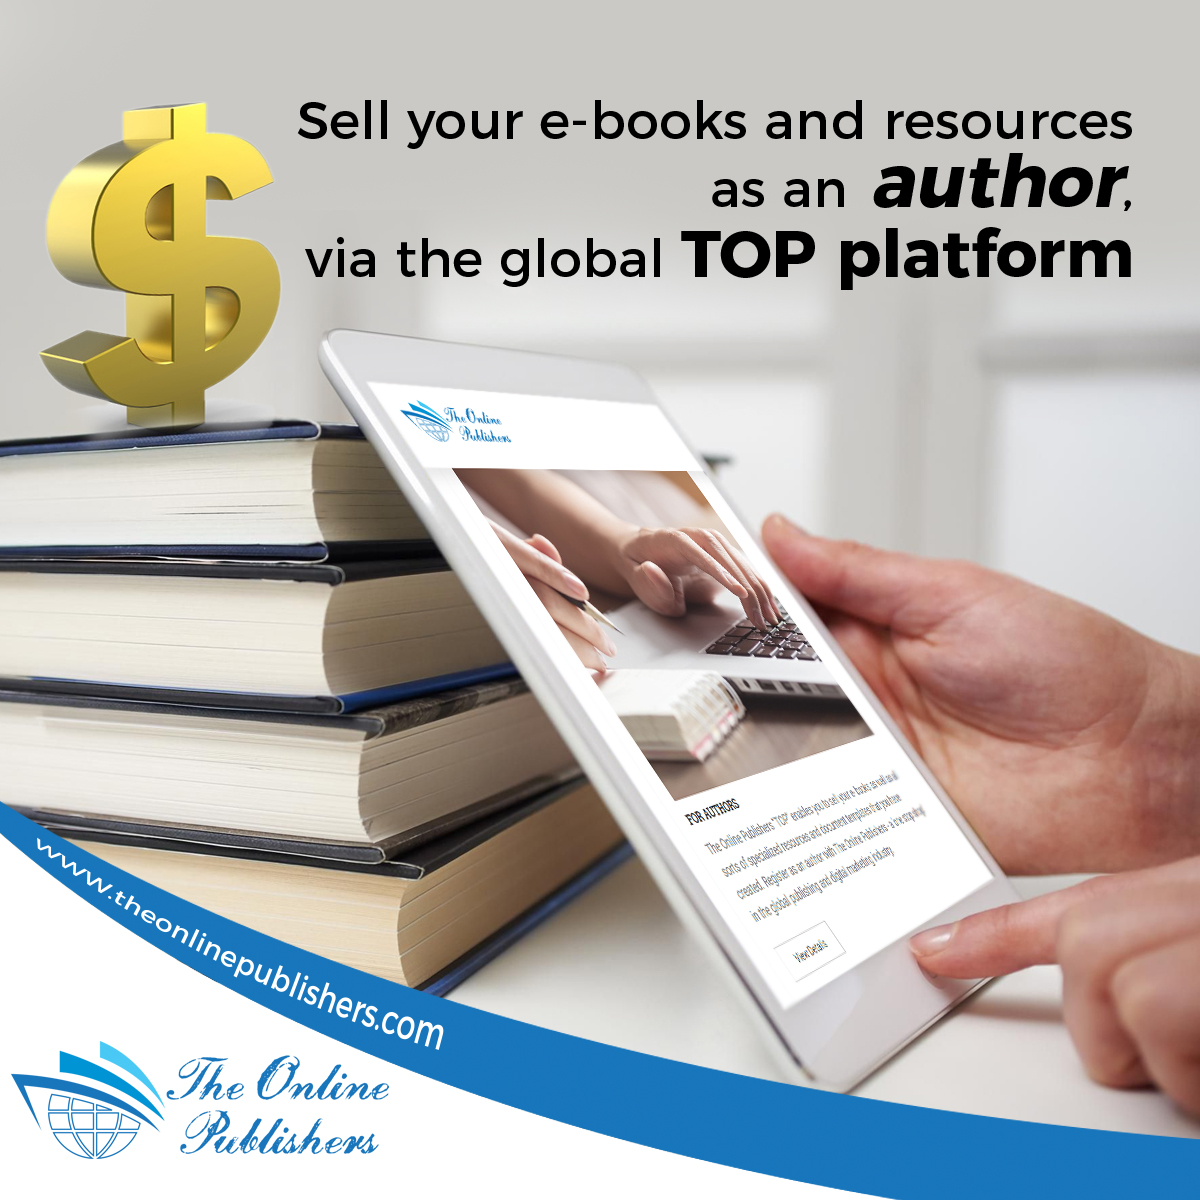 Finding The Right Space For Online Publishing of Ebooks